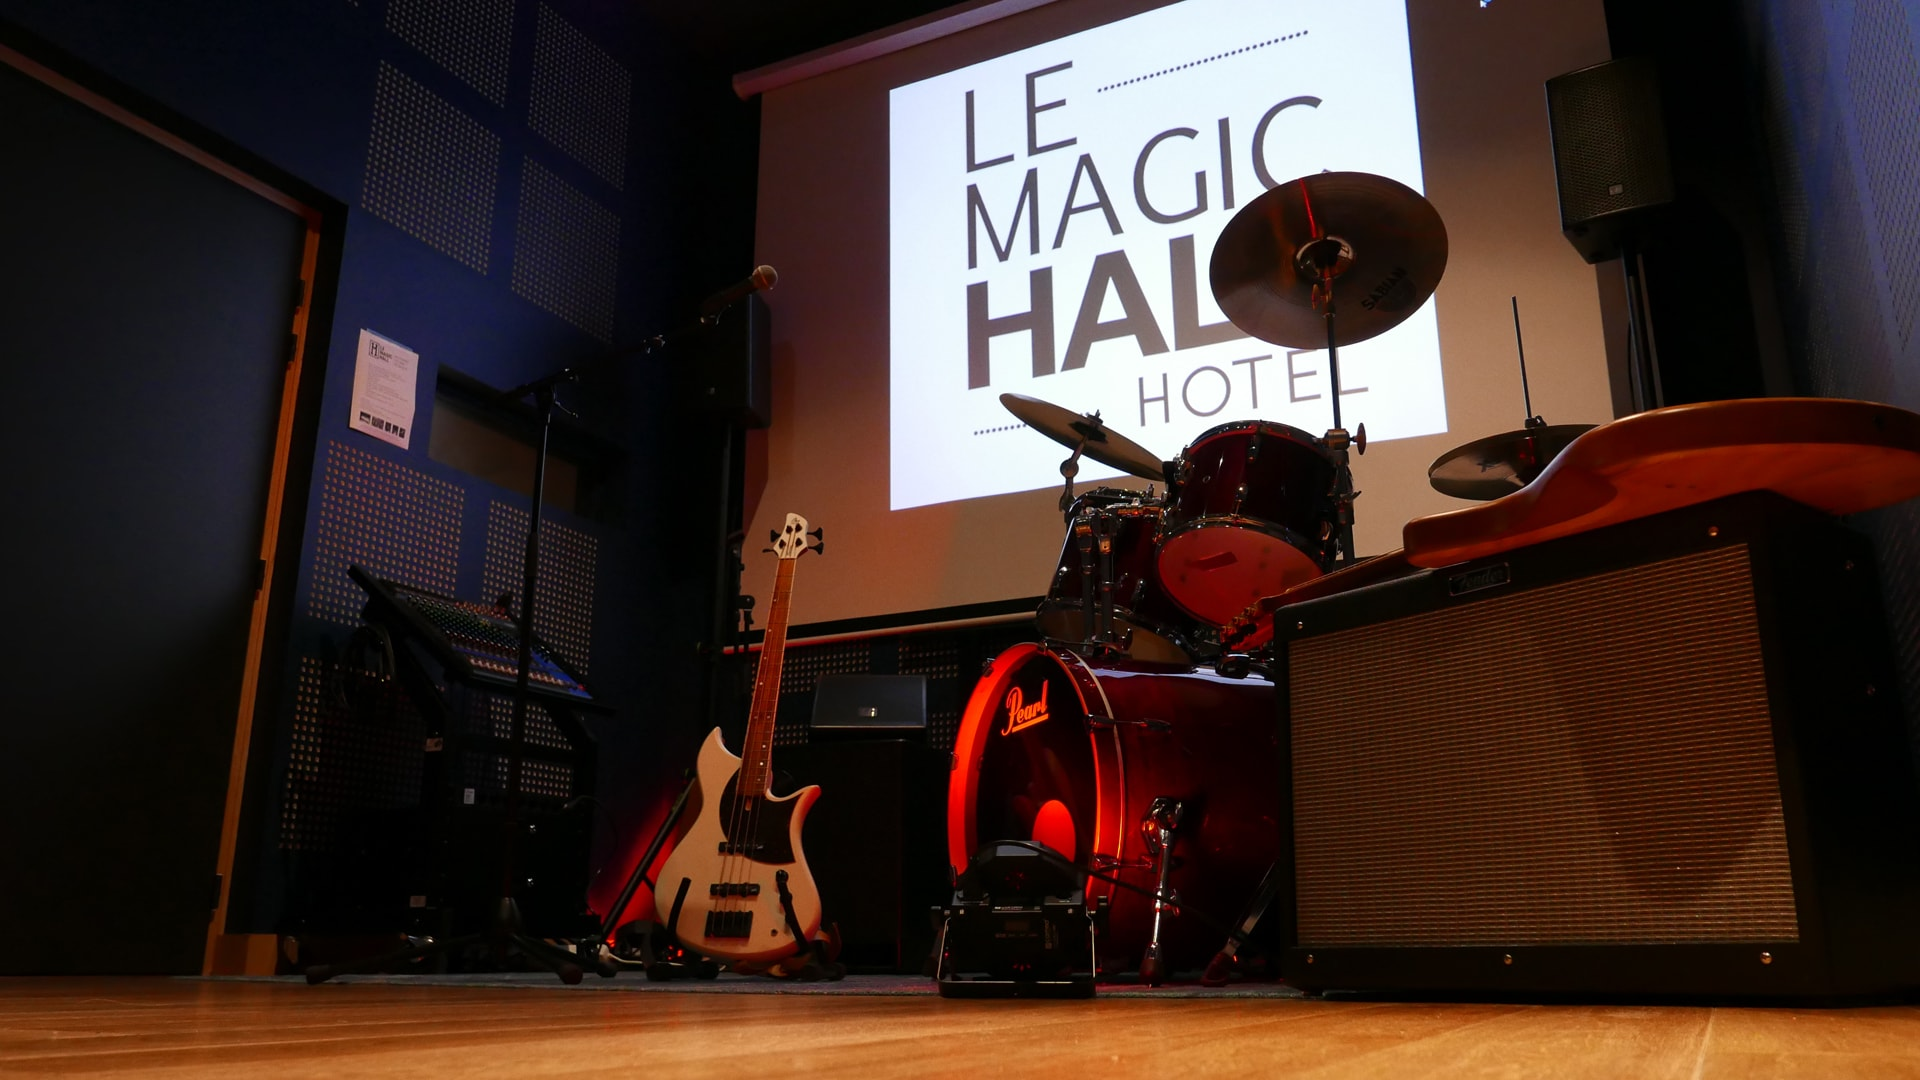 414/Photos/10_studio_de_musique/hotel-le-magic-hall-studio-musique-rennes-instruments-min.jpg